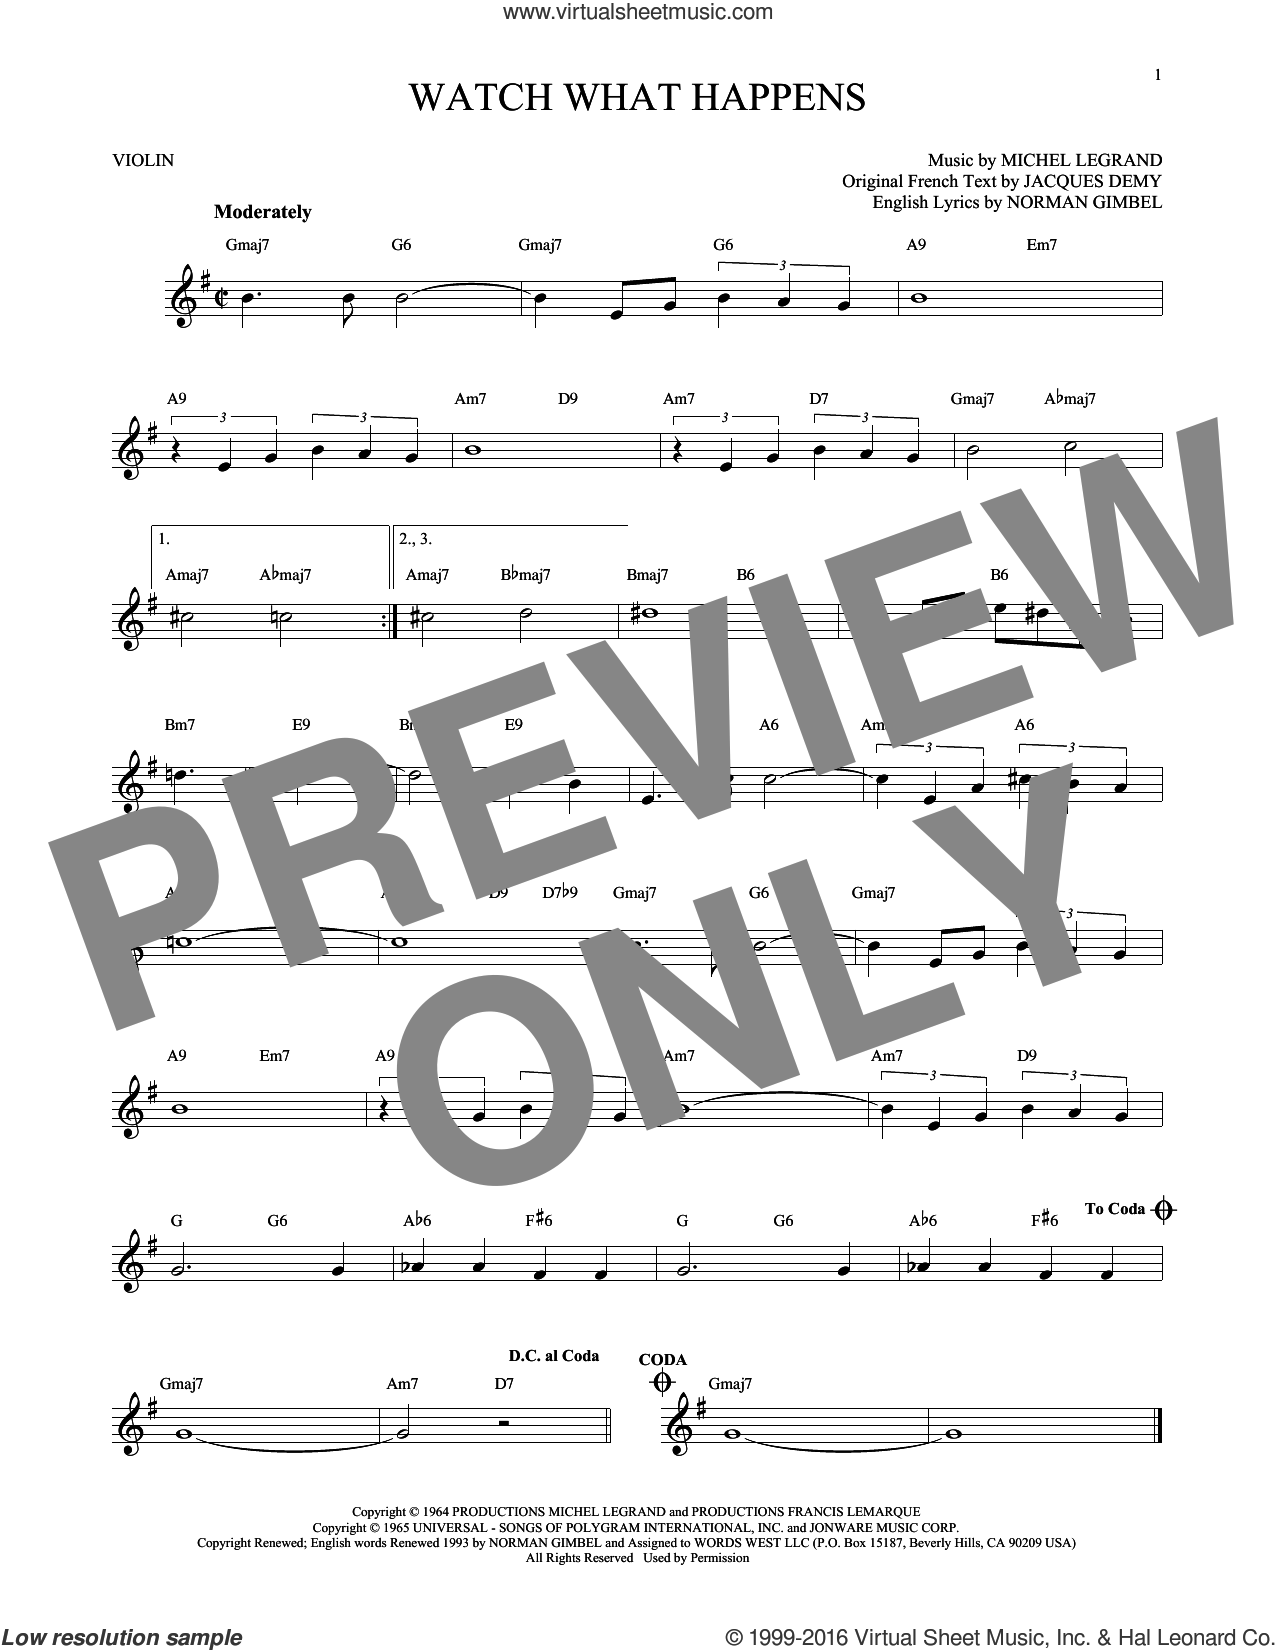 Watch What Happens sheet music for violin solo by Norman Gimbel and Michel LeGrand, intermediate skill level